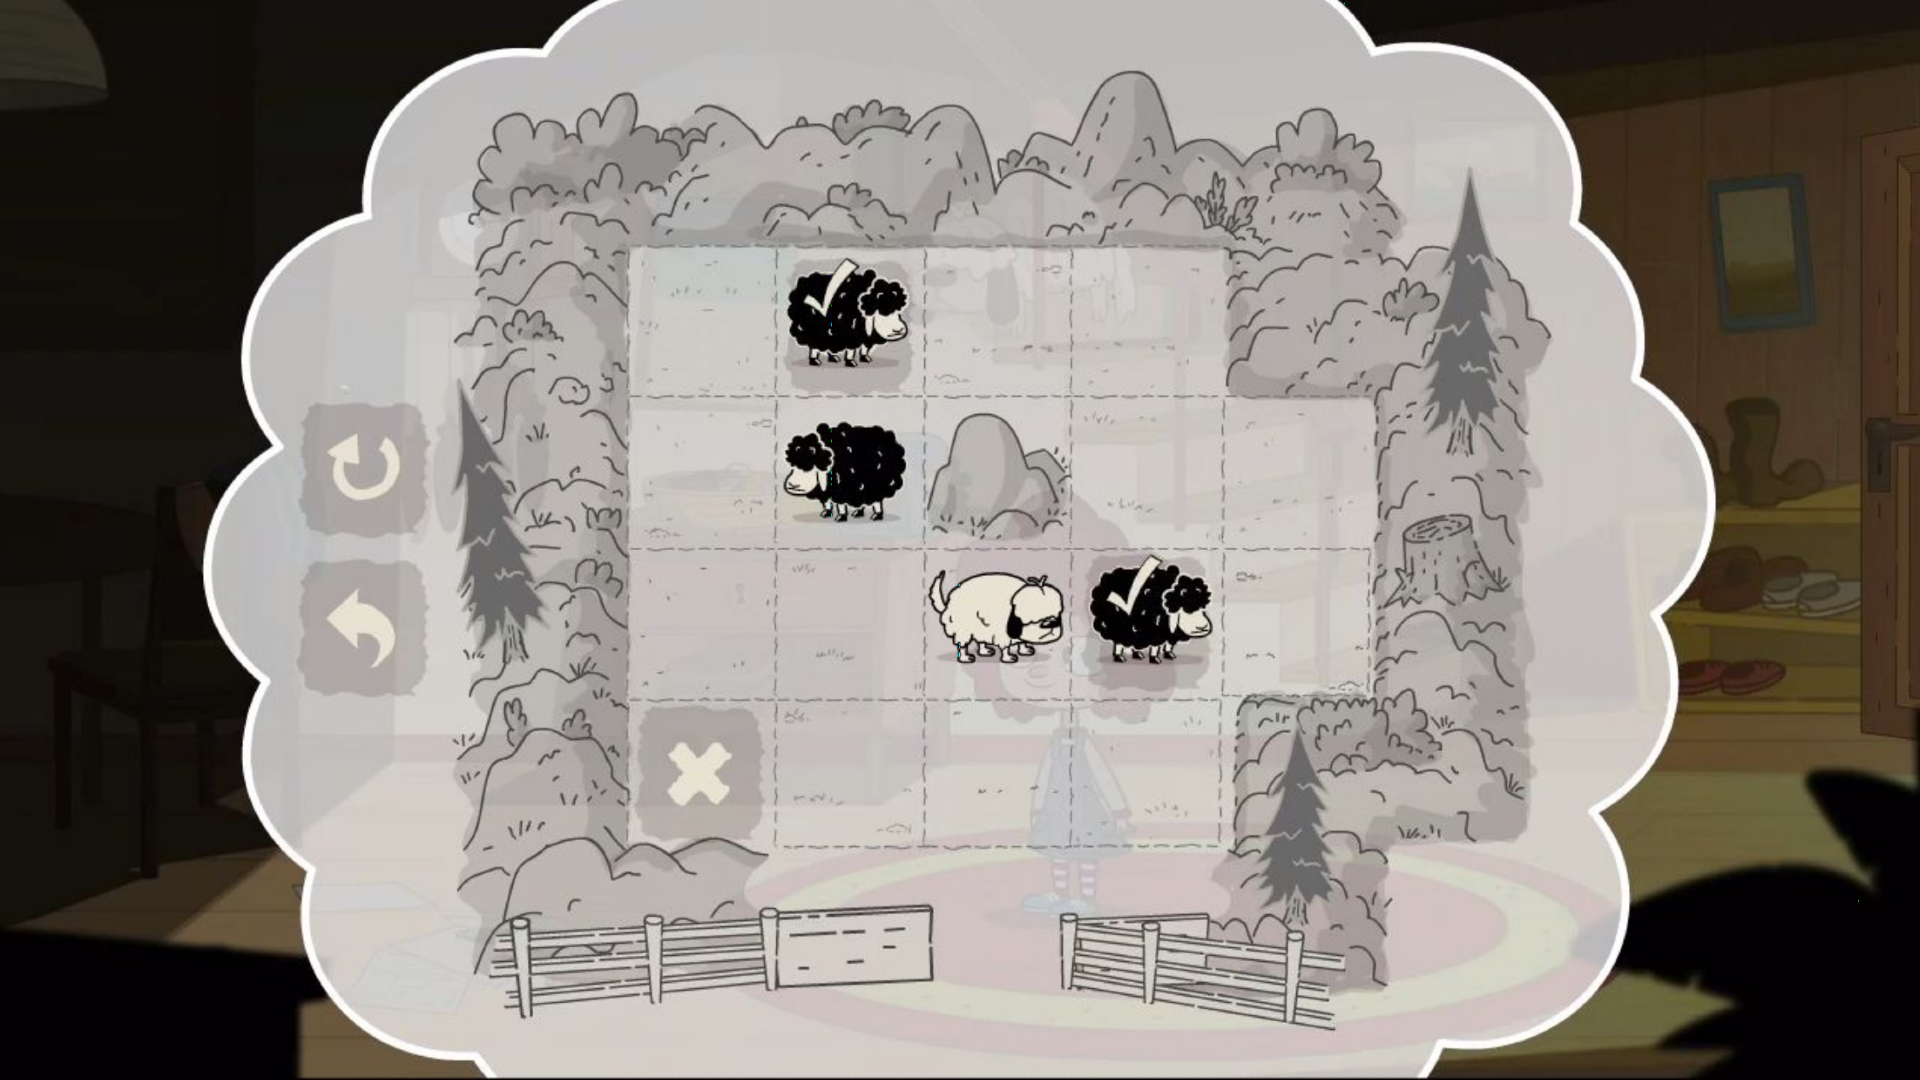 The puzzles are familiar, but retain the game's distinctive artistic direction